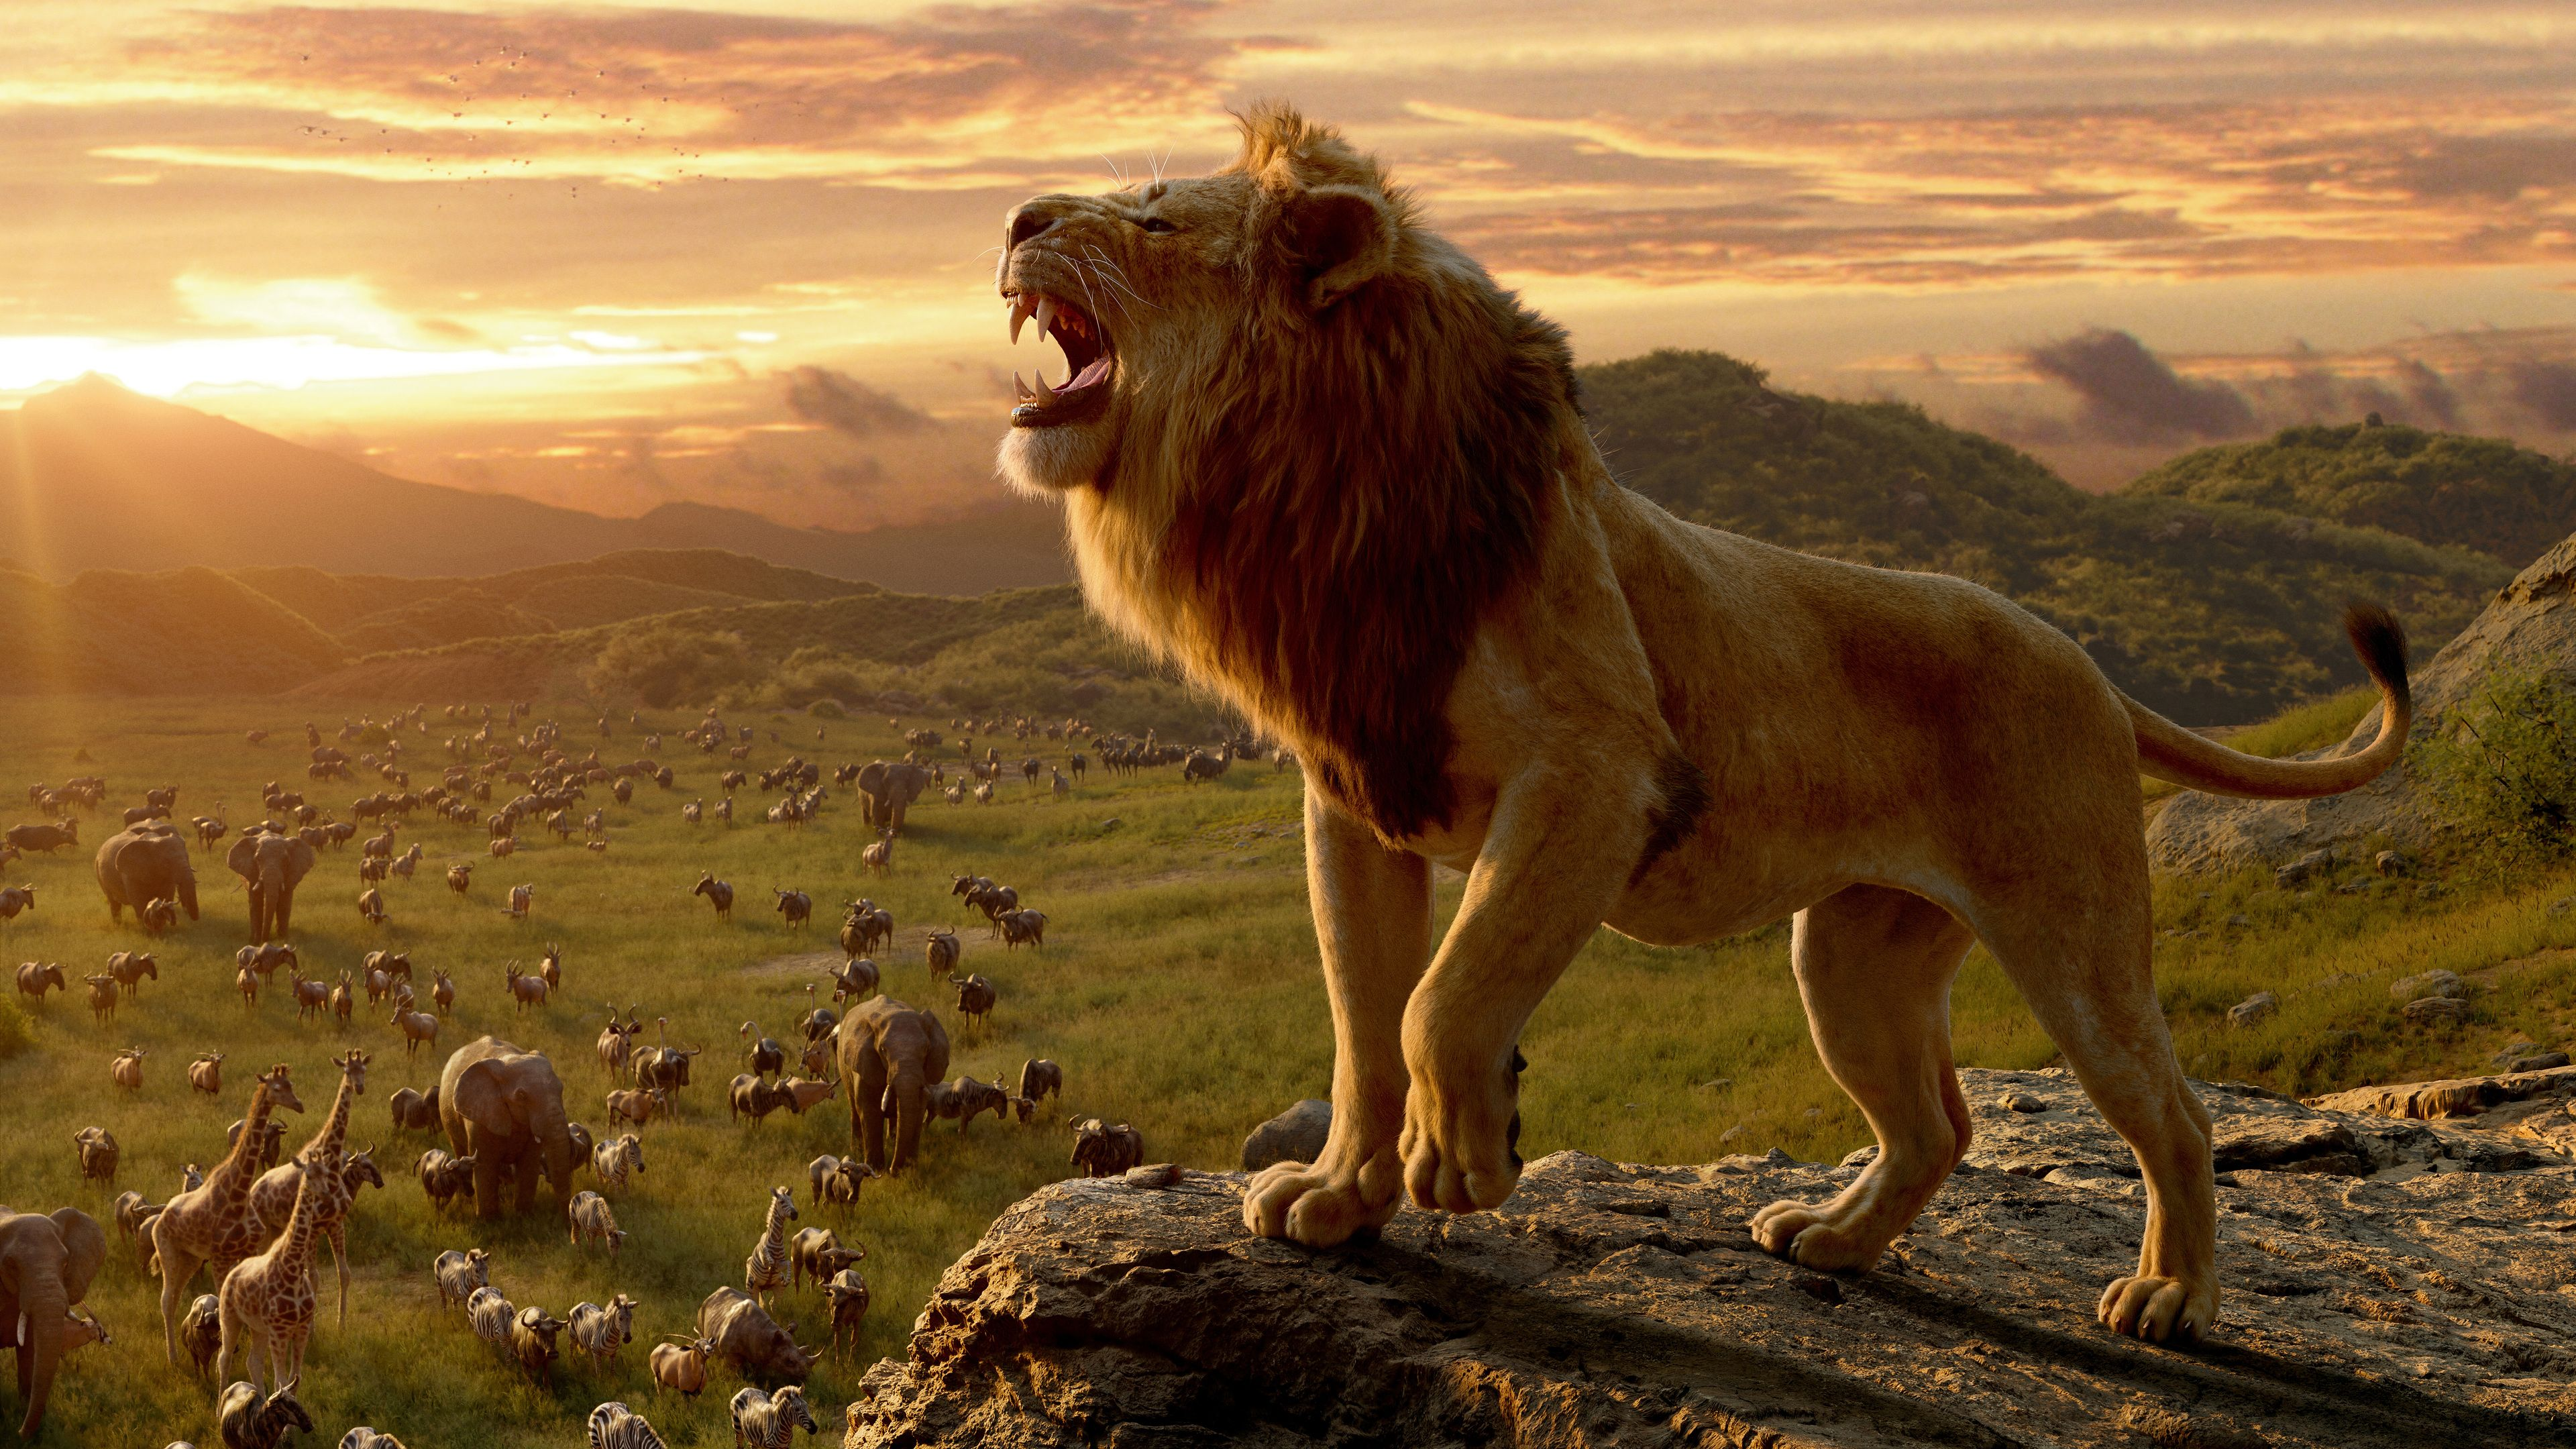 The Lion King Movie The Lion King Wallpapers Movies Wallpapers Lion Wallpapers Hd Wallpapers Disney Wallpapers 8k Wallpaper Lion King Movie Lion King Lion